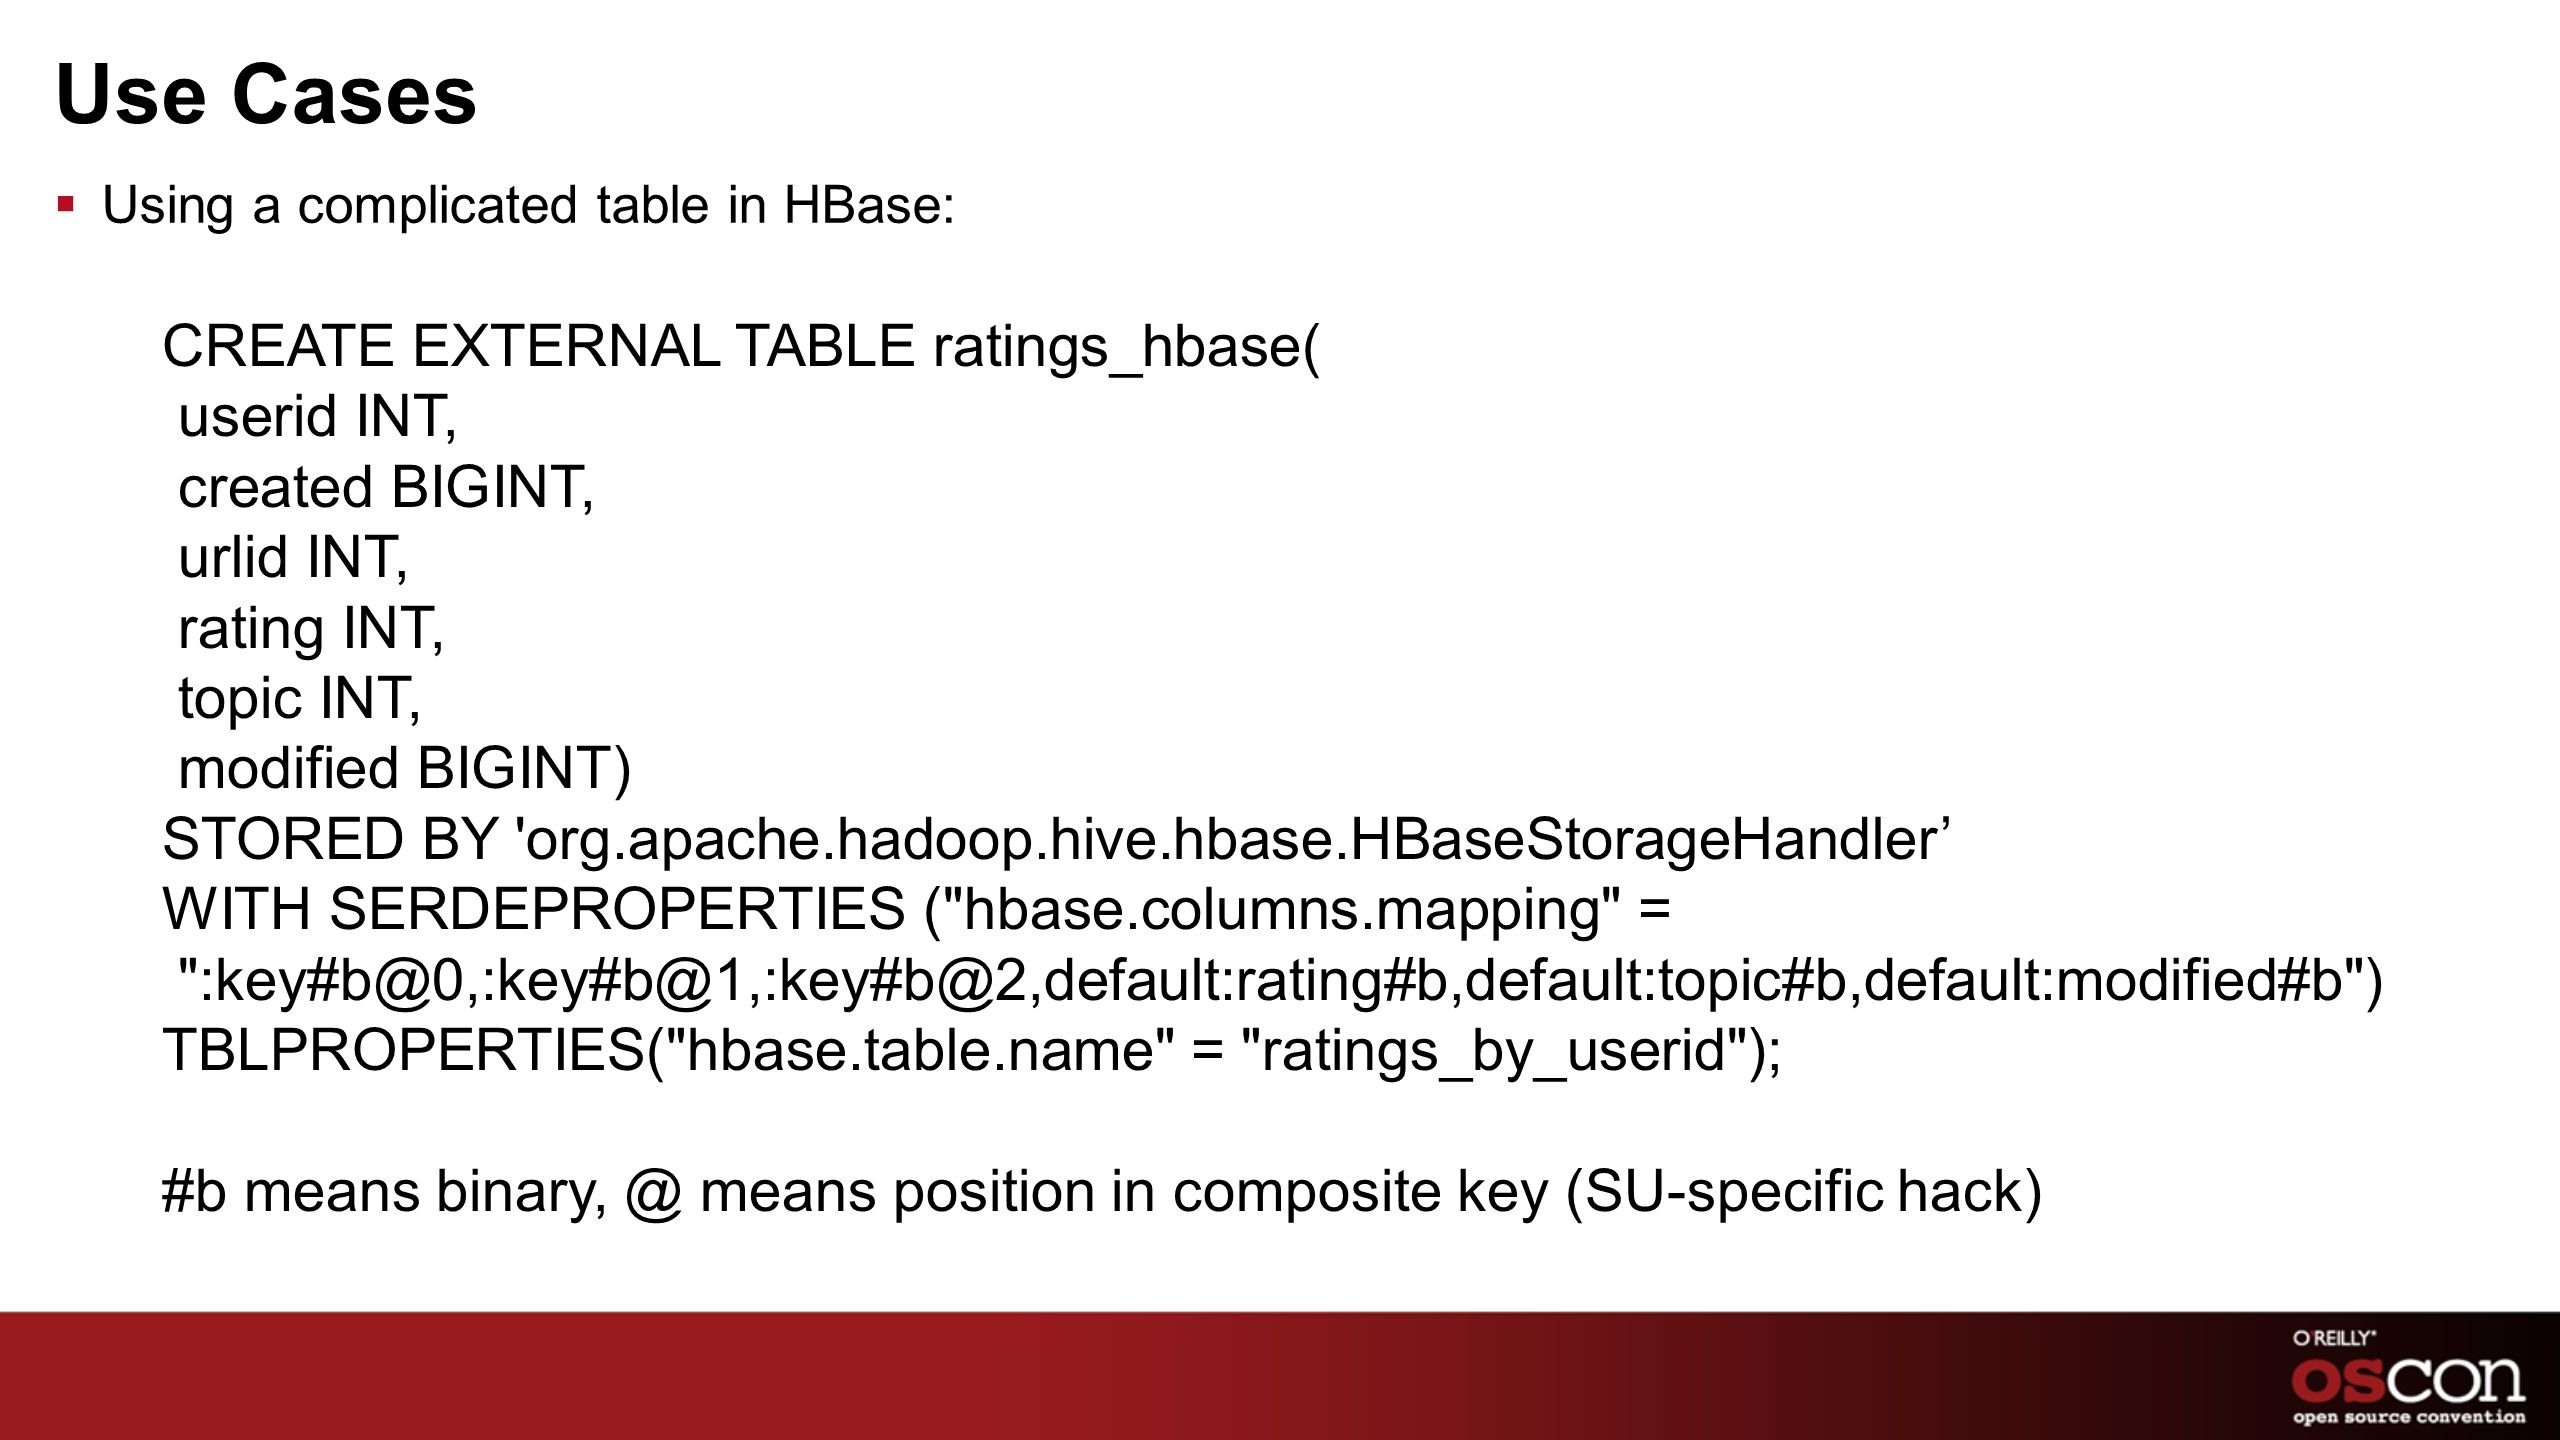 Use Cases Using a complicated table in HBase: CREATE EXTERNAL TABLE ratings_hbase( userid INT, created BIGINT, urlid INT, rating INT, topic INT, modif